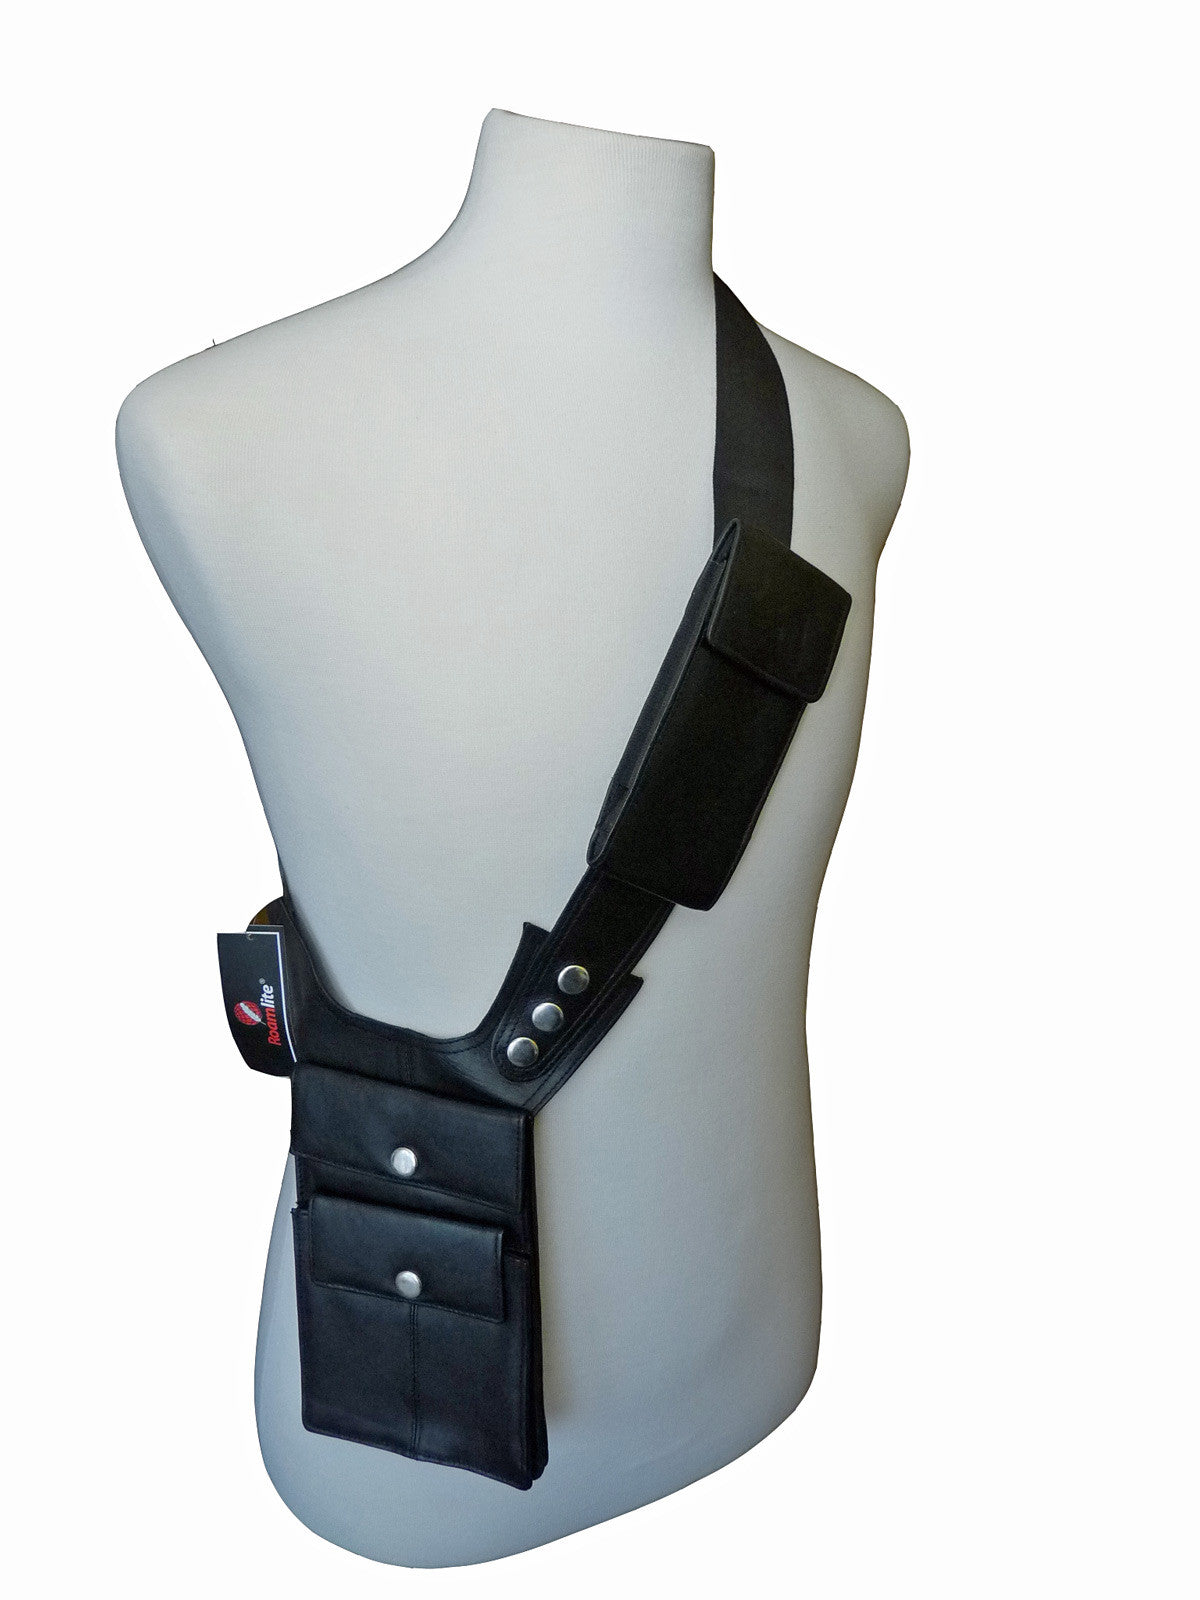 Shoulder Under Arm Holster Travel Bag Black RL705 MODEL VIEW